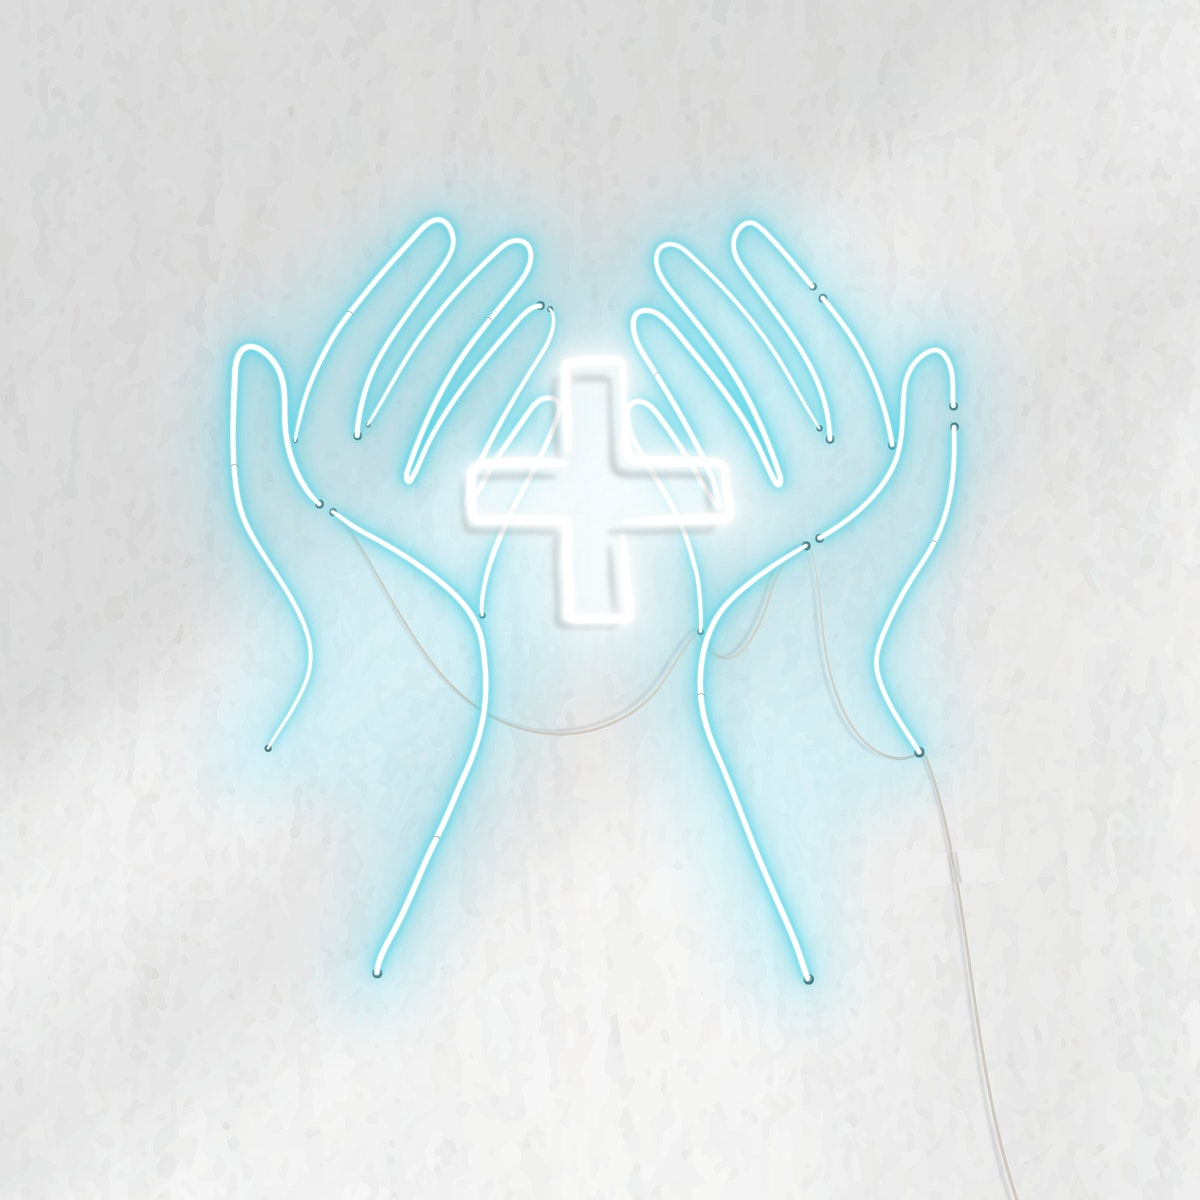 Disinfect your hands neon sign